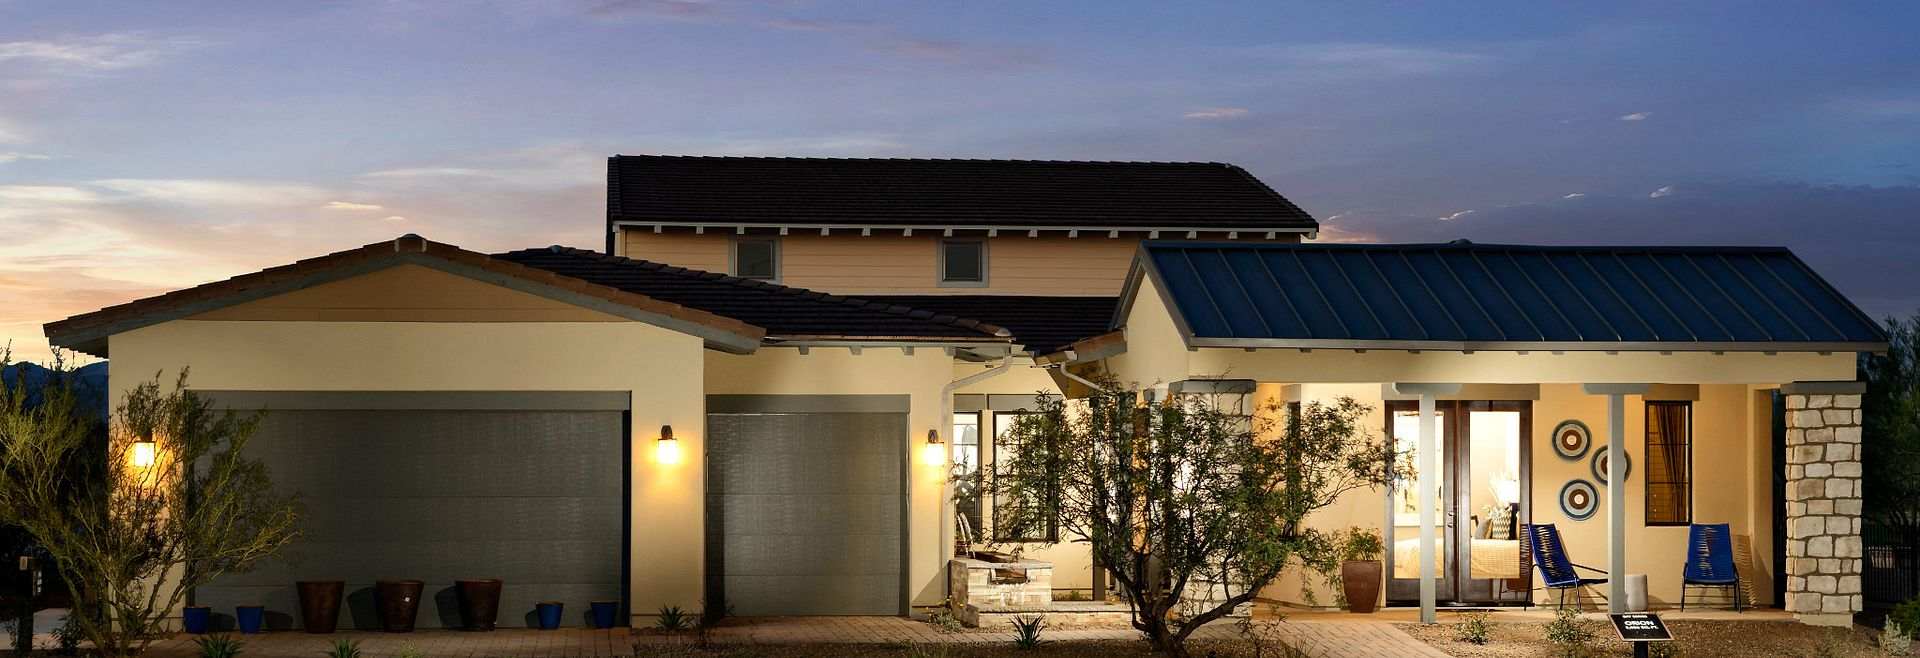 Trilogy at Verde River by Shea Homes in Rio Verde, Arizona